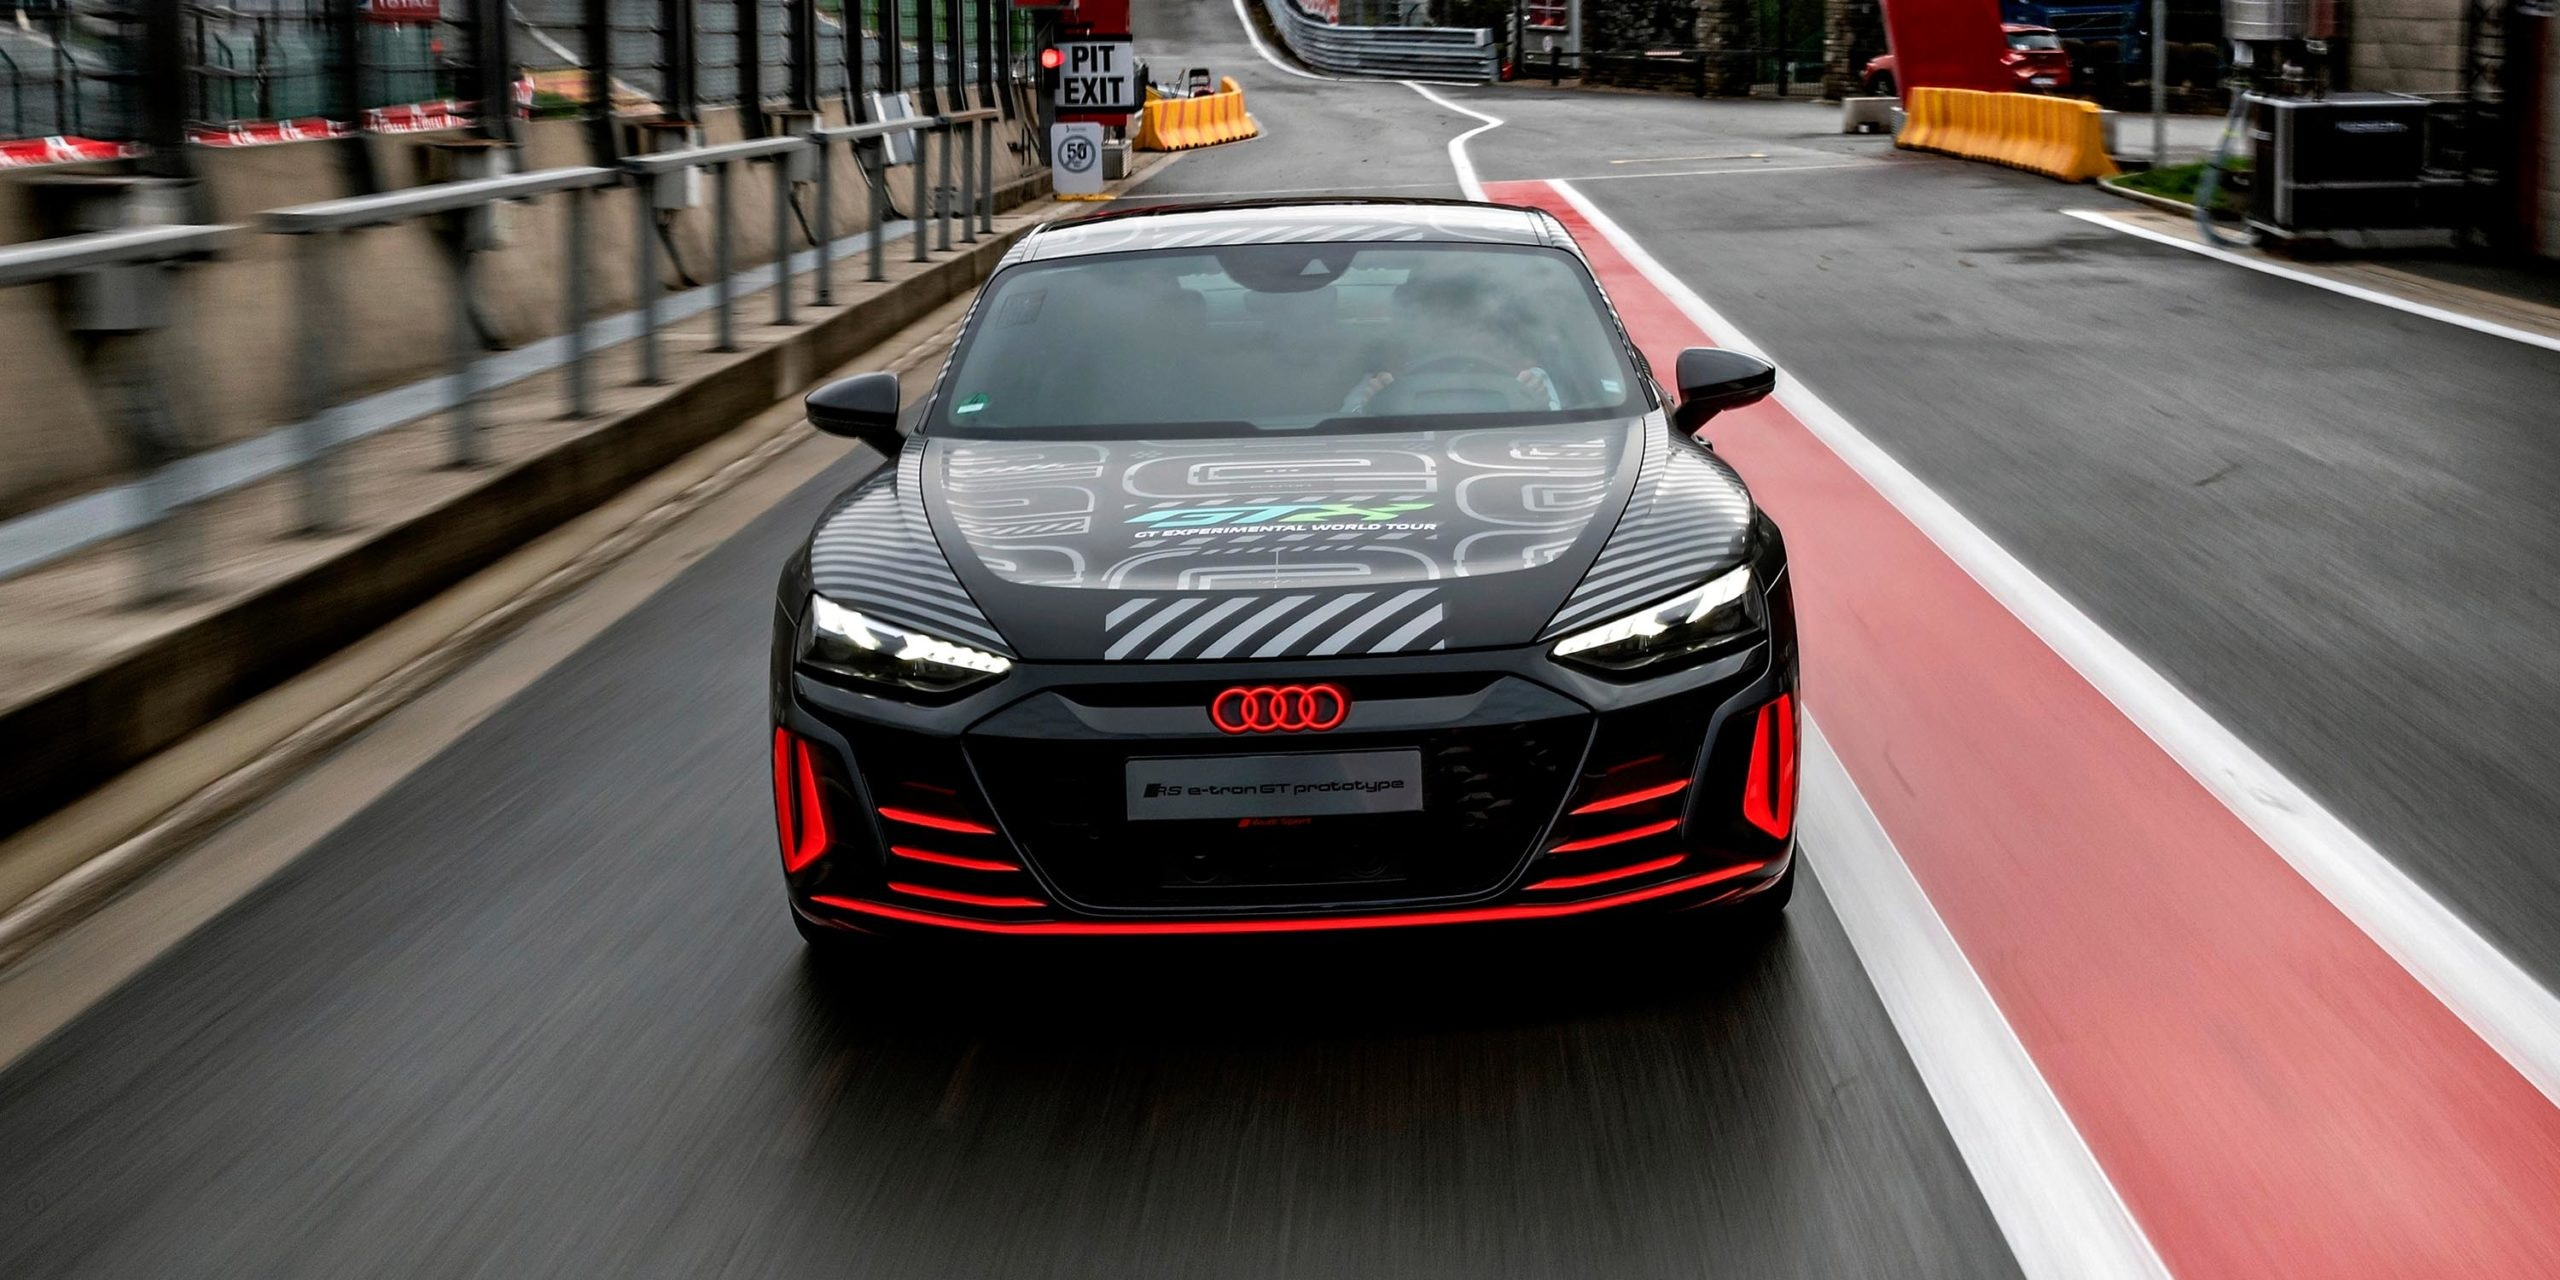 2021 Audi Rs E Tron Gt Driven Price Specs And Release Date Carwow